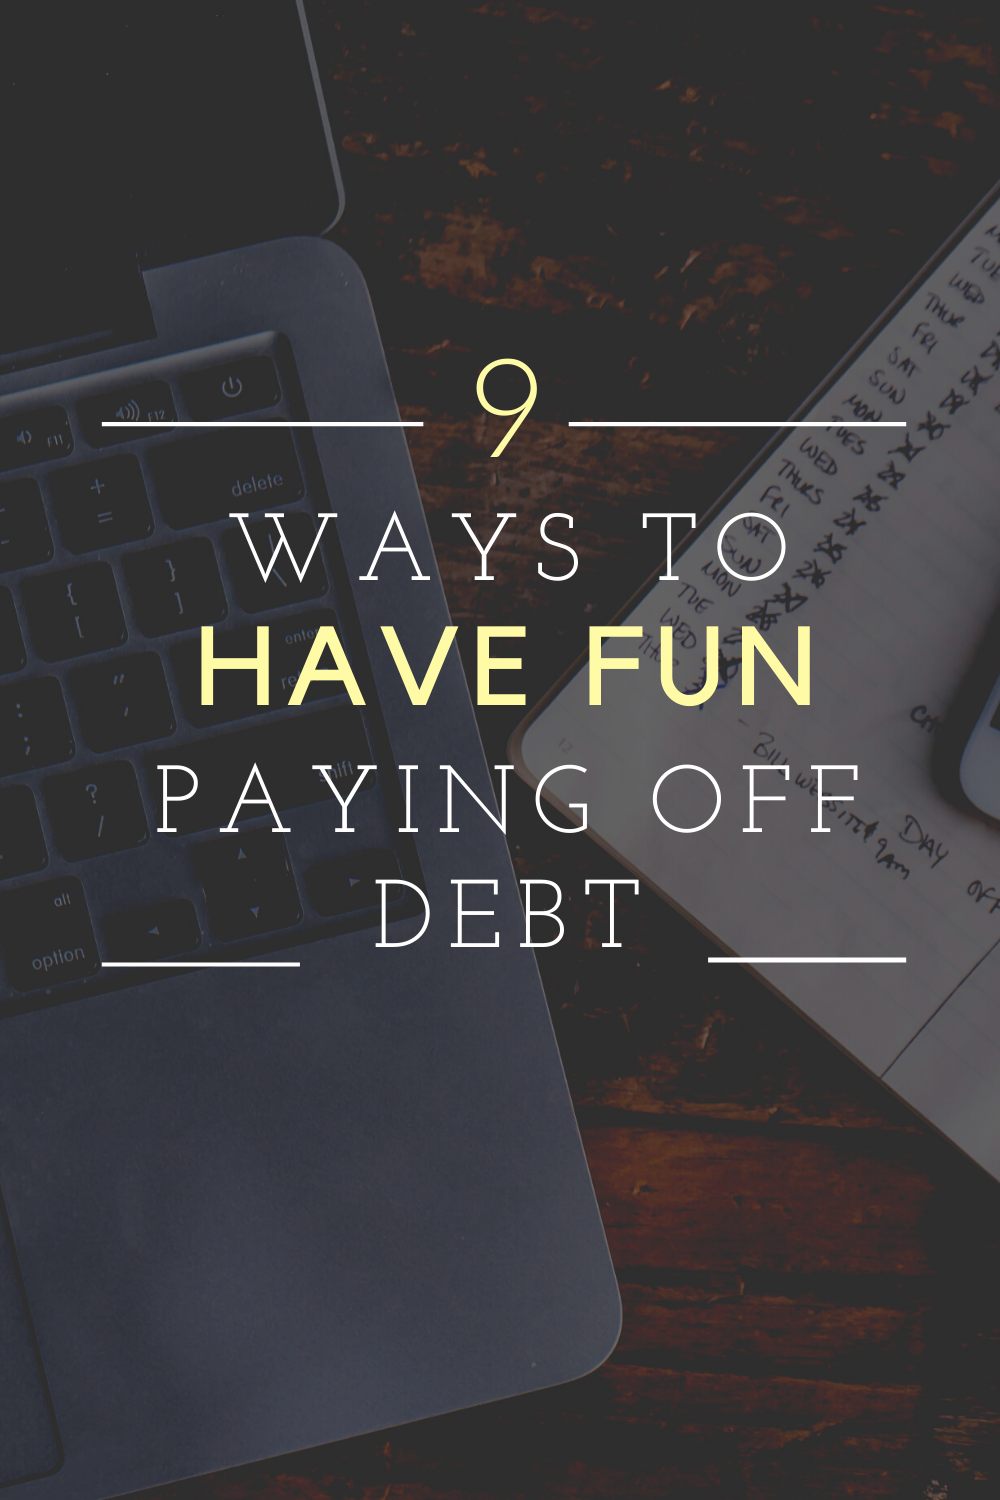 9 Ways To Have Fun Paying Off Debt